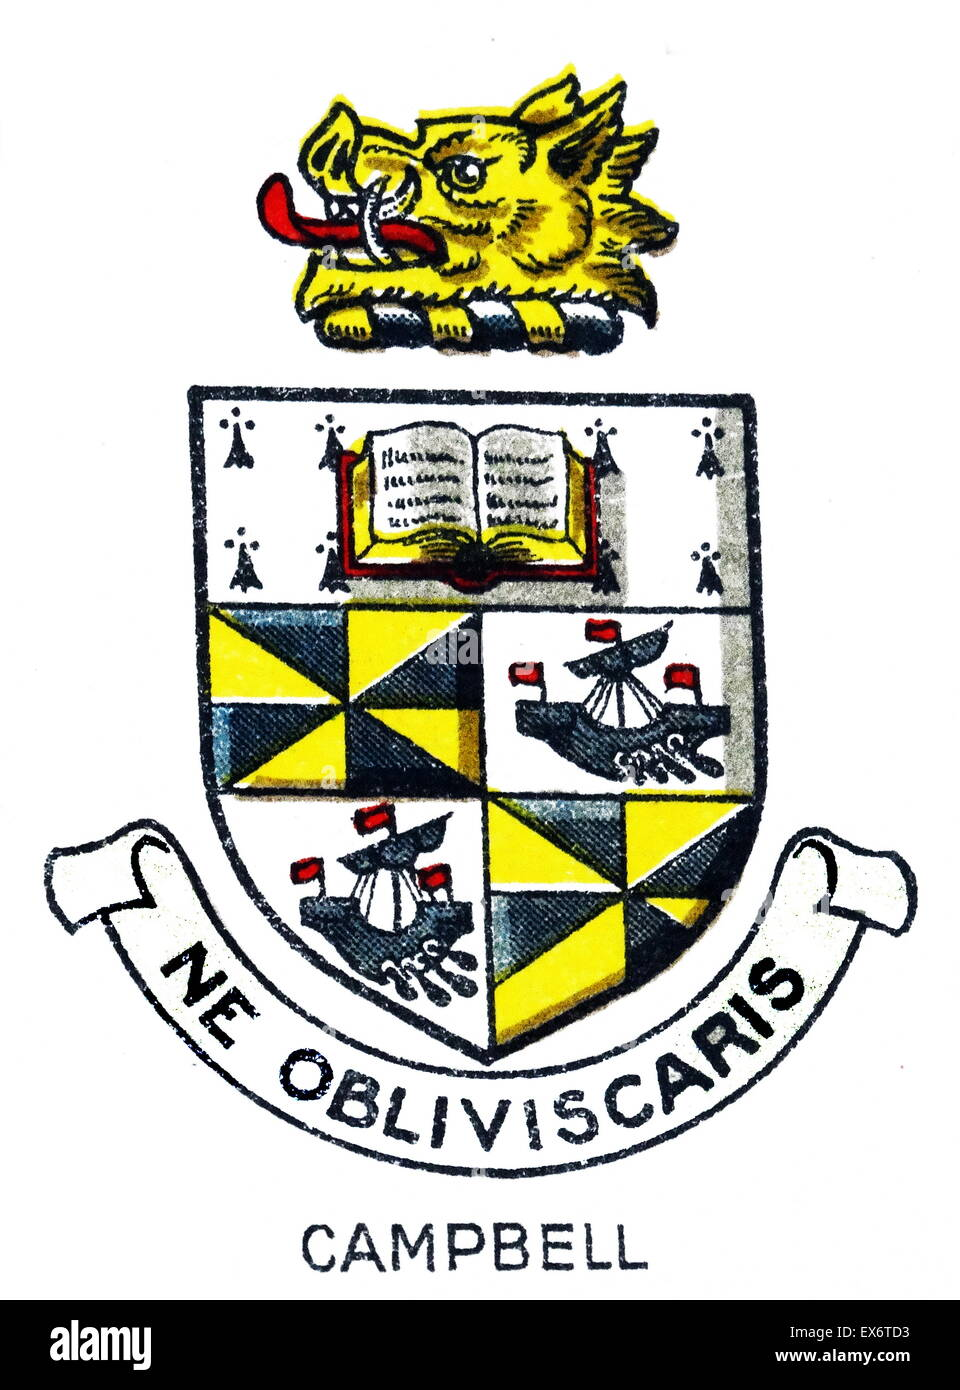 Emblem for Campbell College, Belfast, Northern Ireland, a voluntary grammar school. The college was founded in 1894. Stock Photo